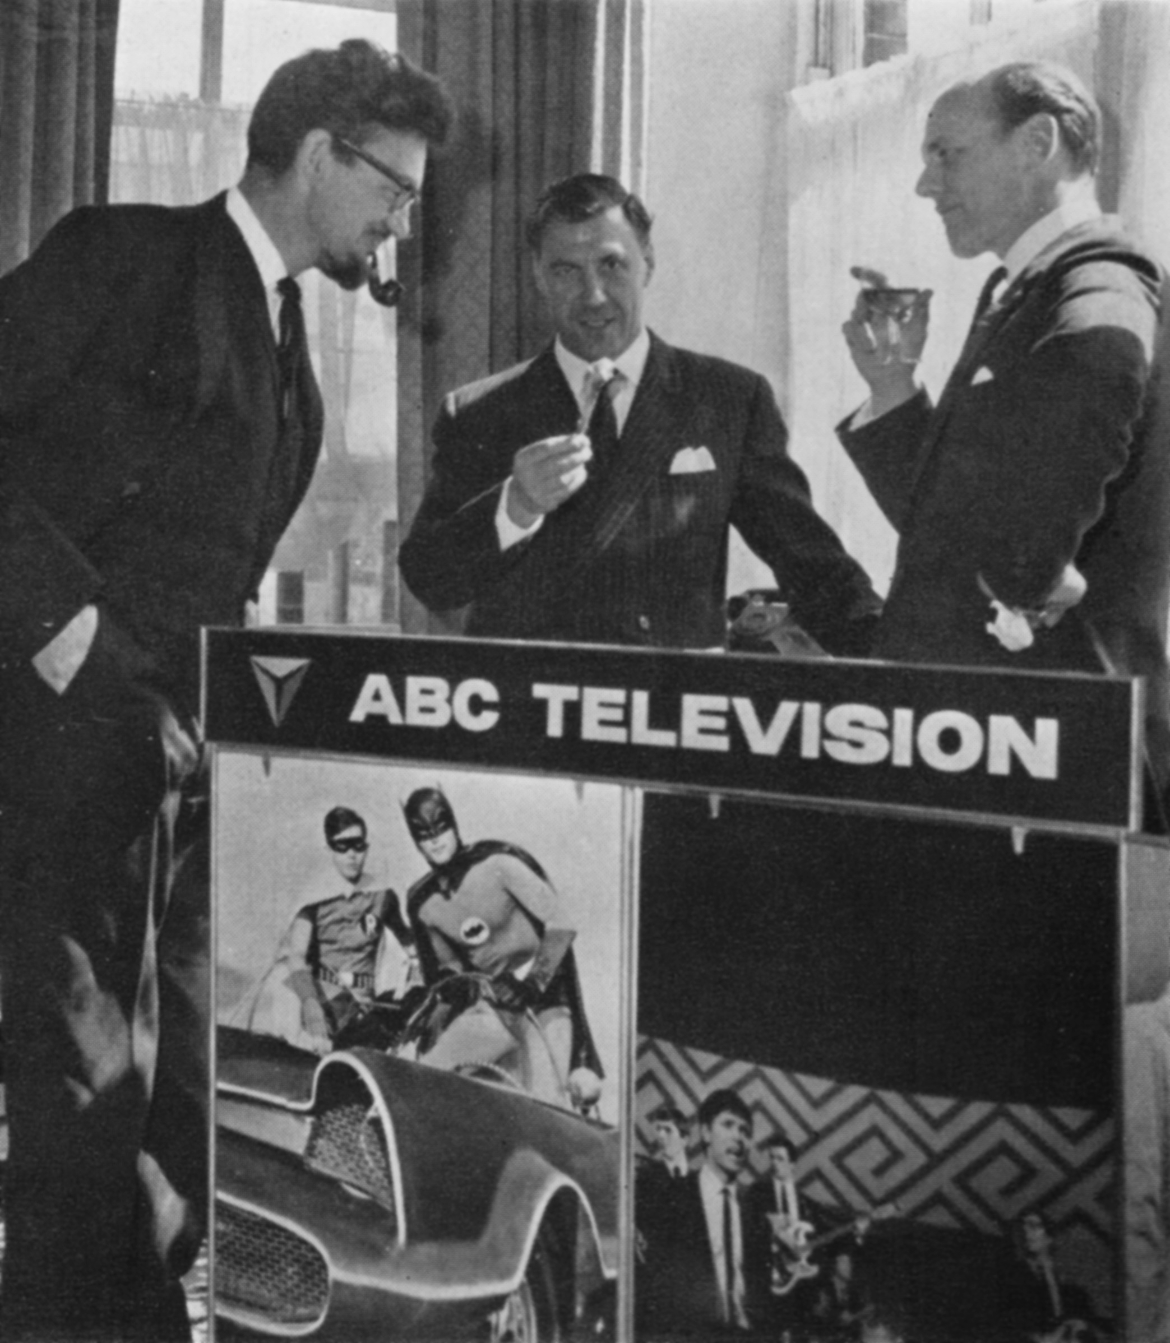 Three men, on drinking, one easting, one smoking a pipe, next to an advertisement for Batman and Thank Your Lucky Stars